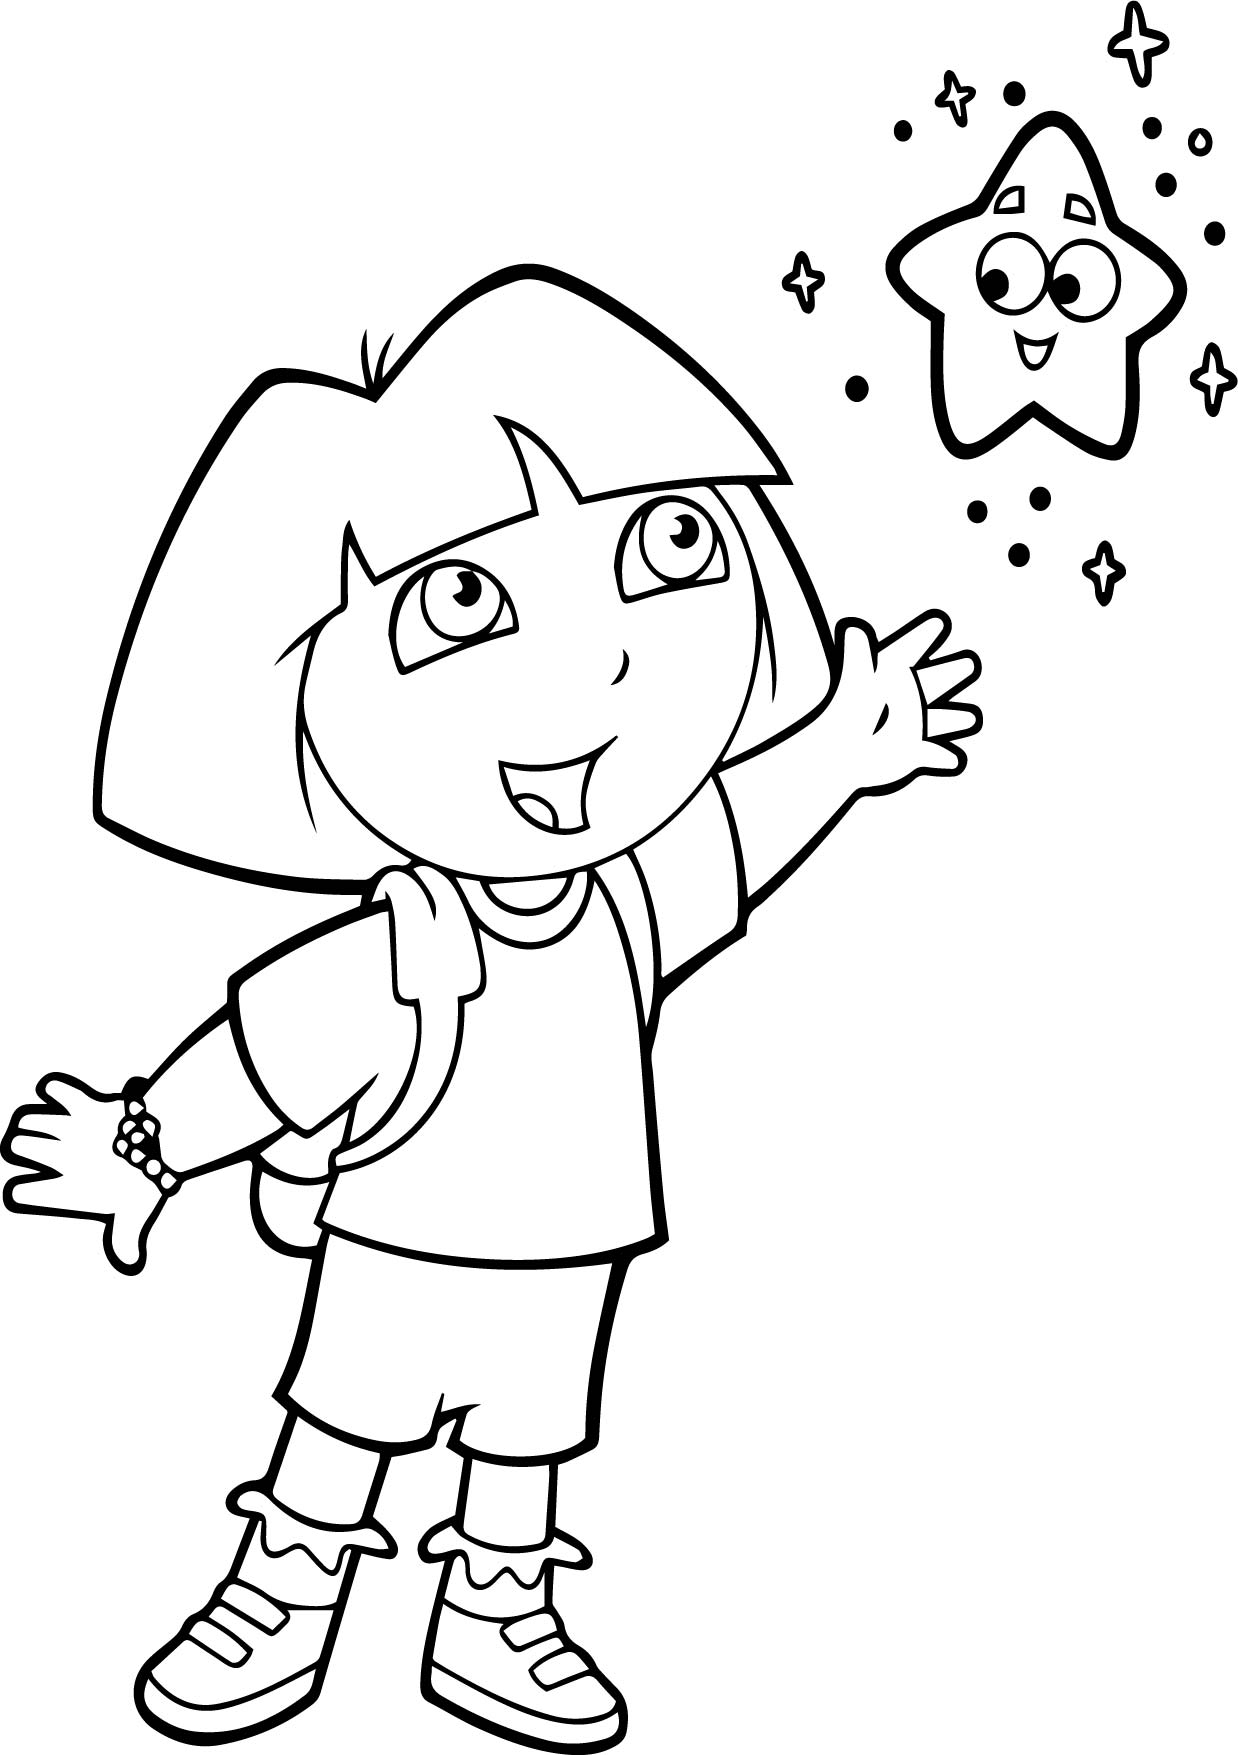 dora with the little star coloring page wecoloringpage